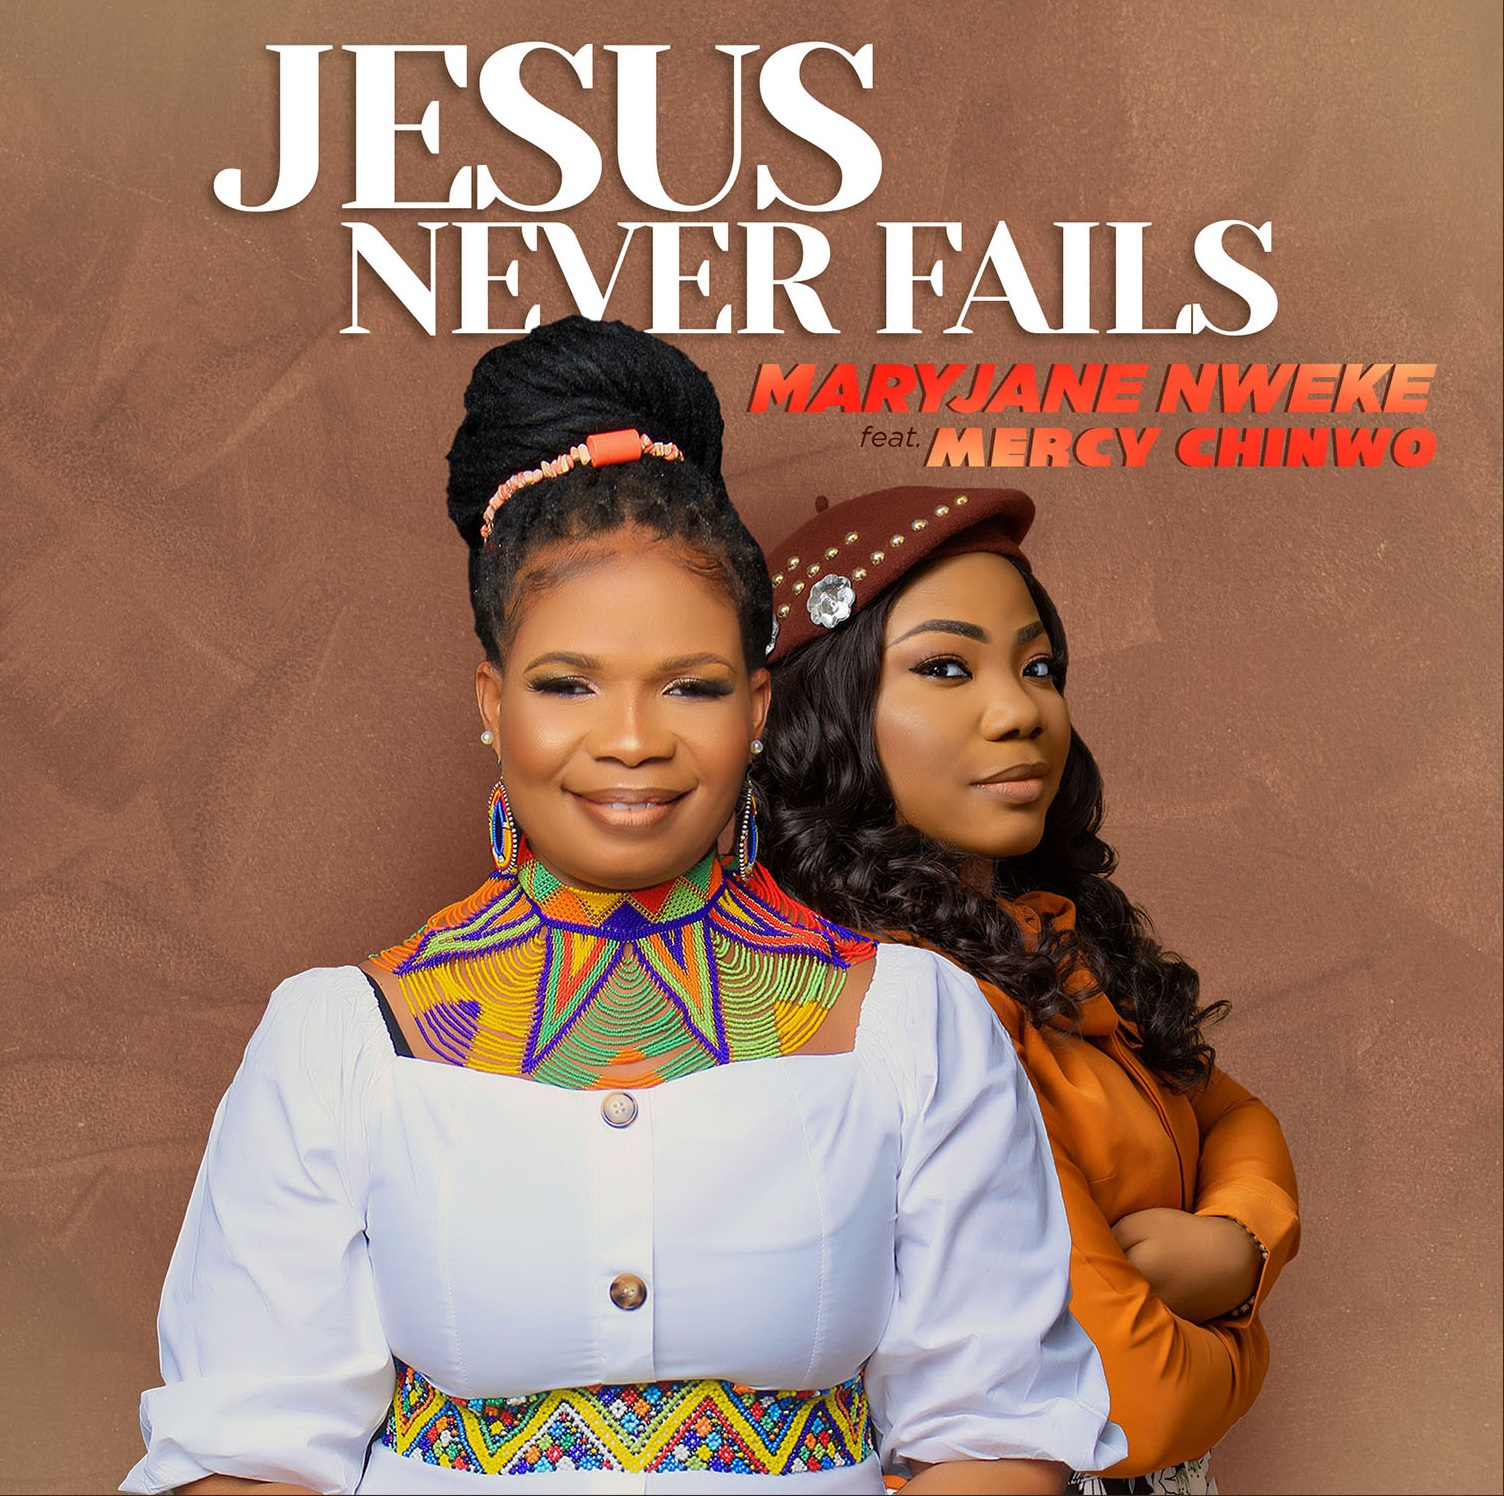 Jesus Never Fails - MaryJane Nweke Ft. Mercy Chinwo